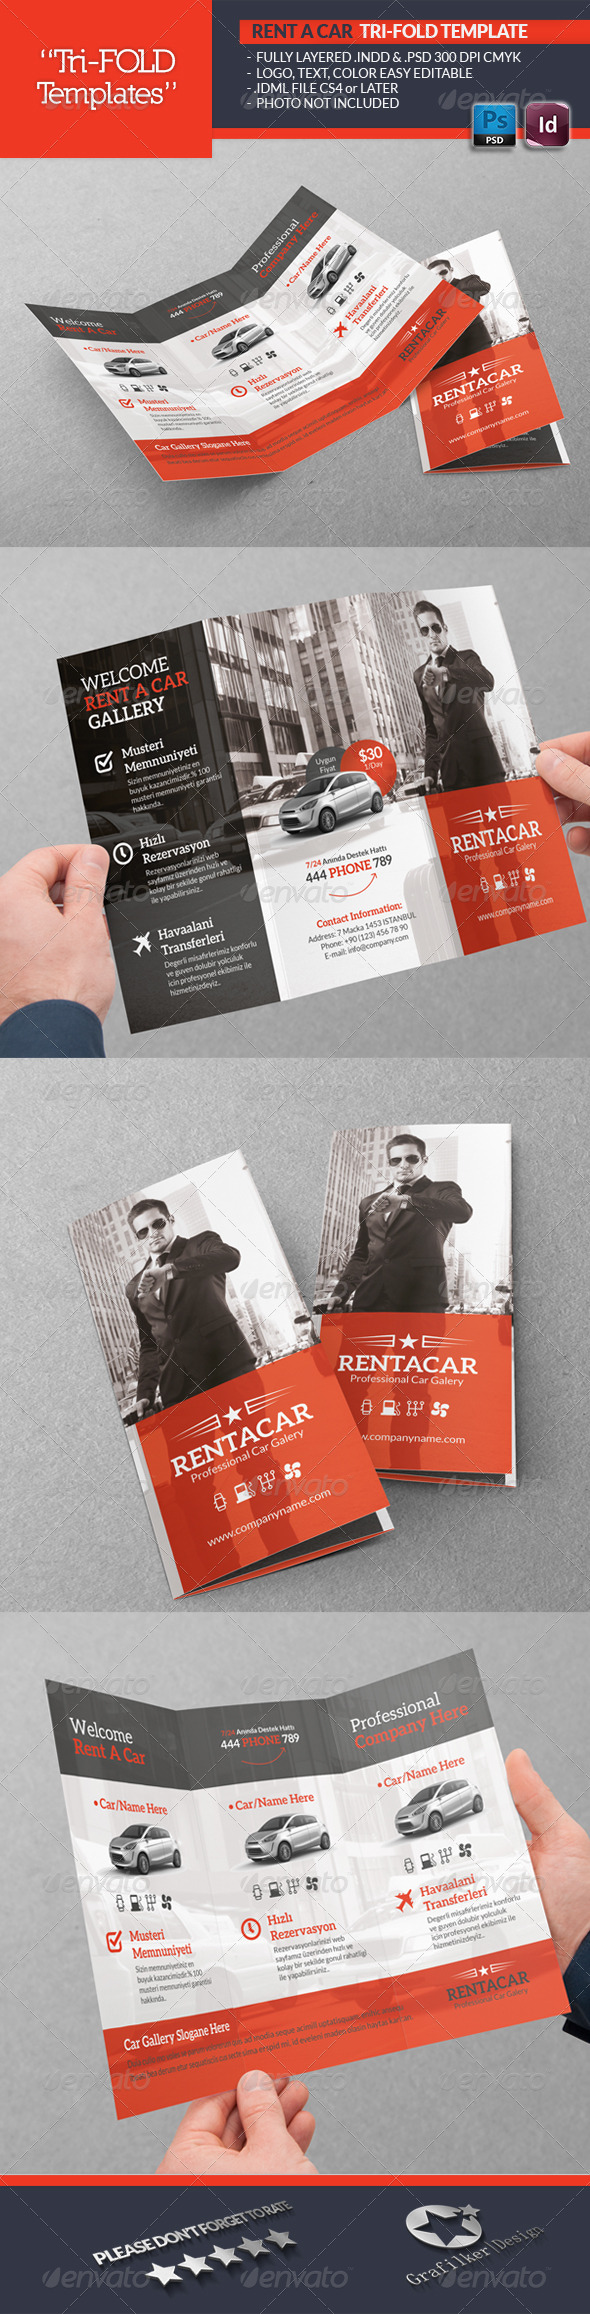 GraphicRiver Rent A Car Tri-Fold Template 5526922